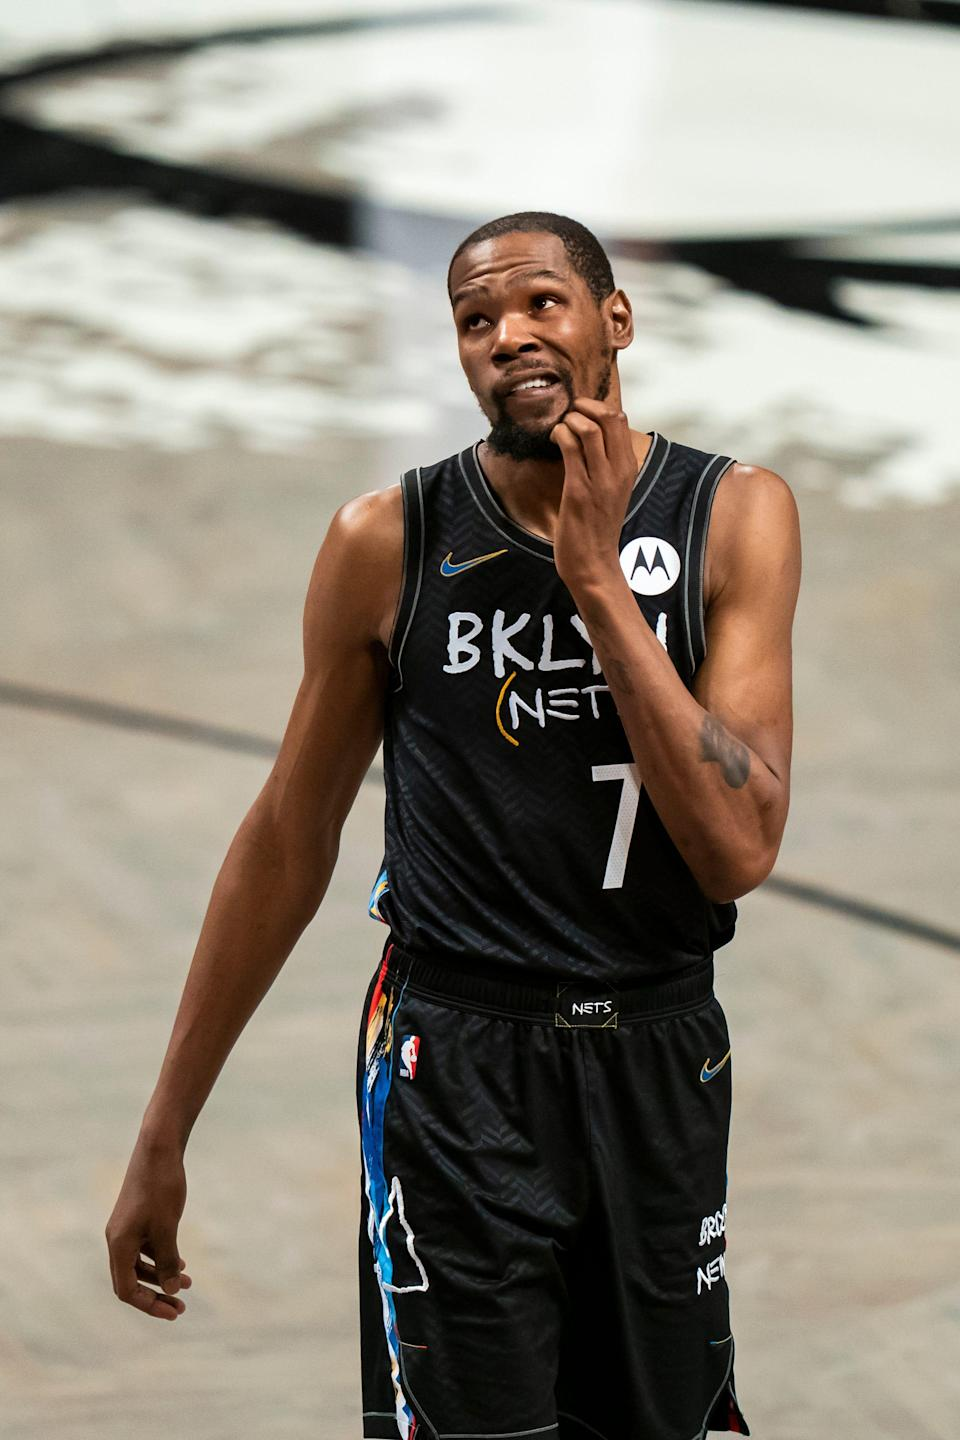 Kevin Durant has appeared in only 24 games for the Nets this season, but he remains the key to their championship hopes.